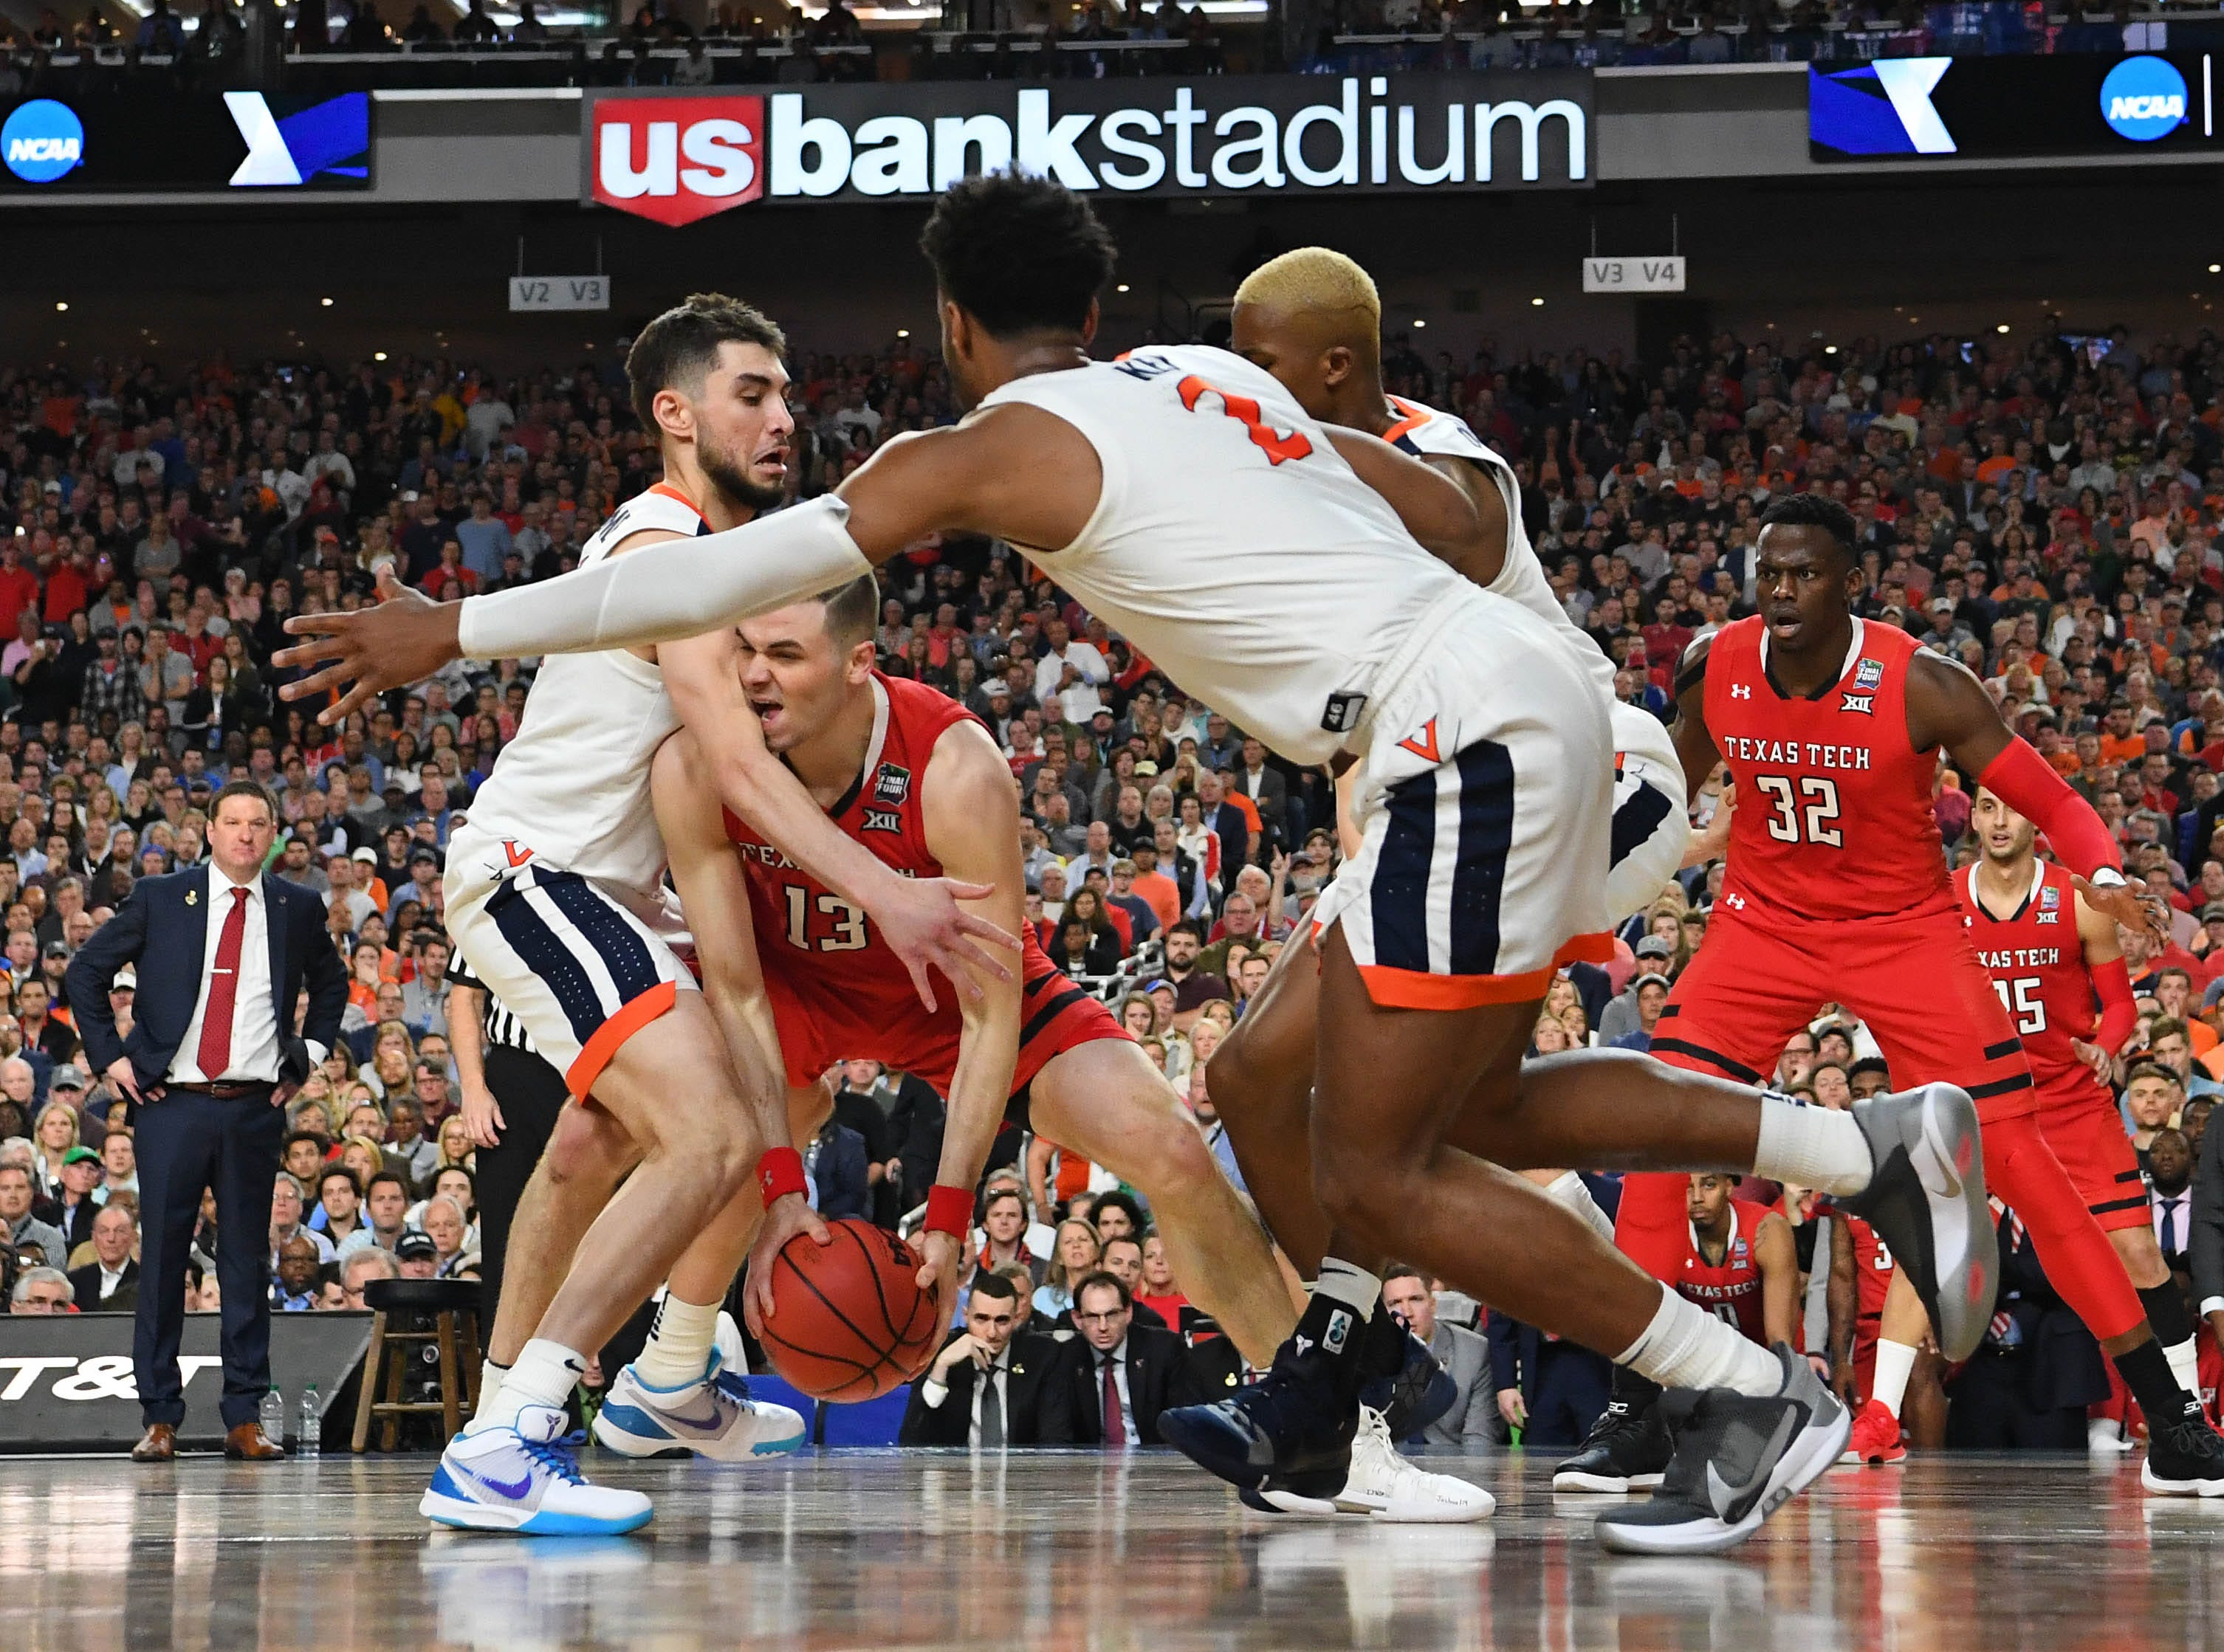 Apr 8, 2019; Minneapolis, MN, USA; Texas Tech Red Raiders guard Matt Mooney (13) looks to pass as Virginia Cavaliers guard Ty Jerome (left) and guard Braxton Key (2) defend during the second half in the championship game of the 2019 men's Final Four at US Bank Stadium. Mandatory Credit: Bob Donnan-USA TODAY Sports